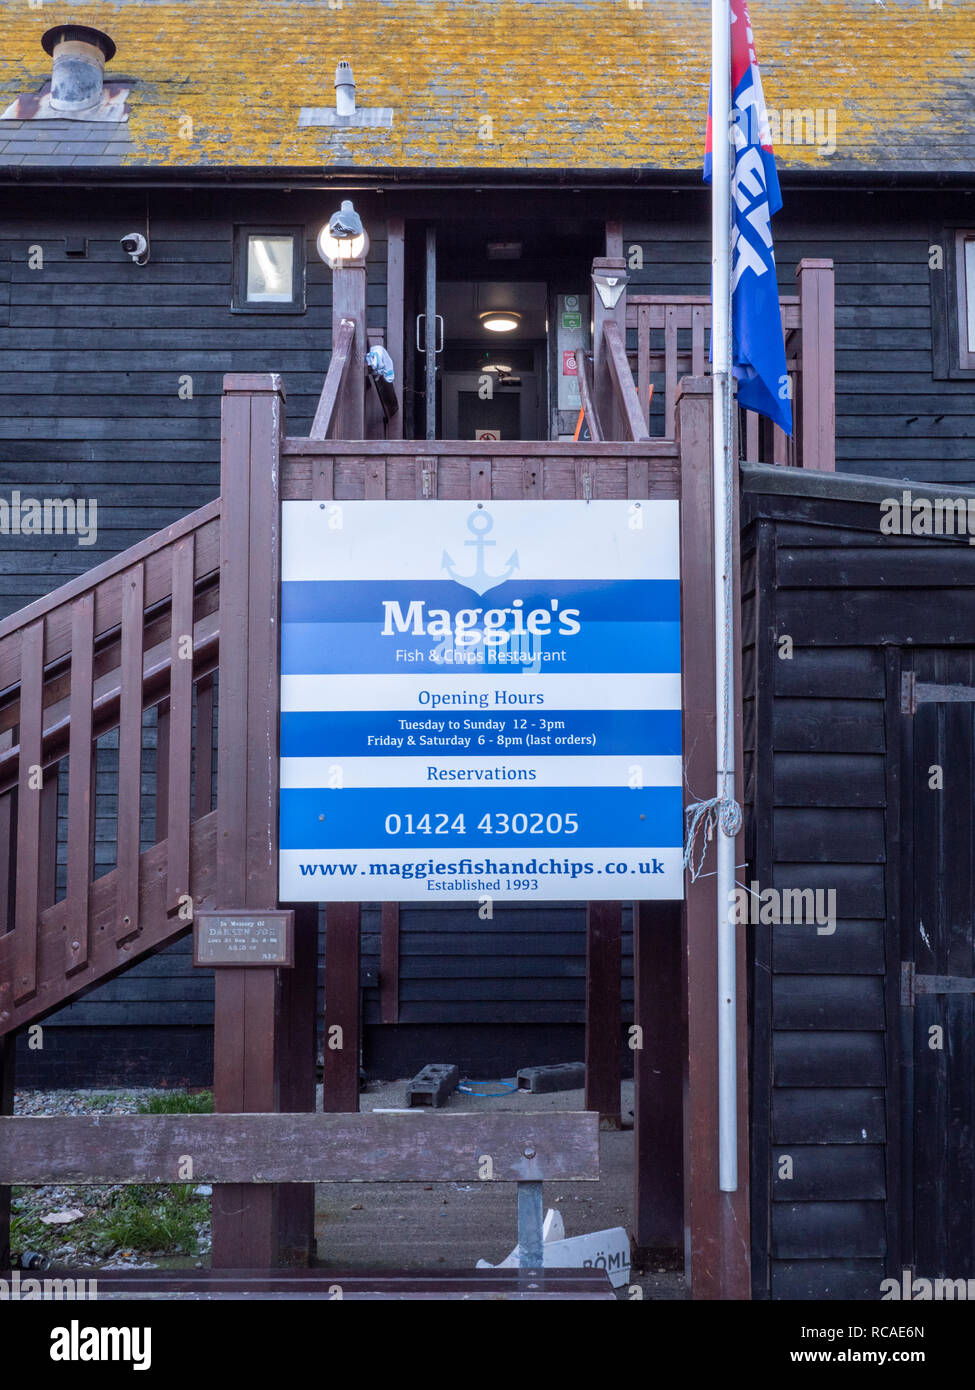 Maggie's Fish and Chip Shop Old Hastings East Sussex UK - Stock Image